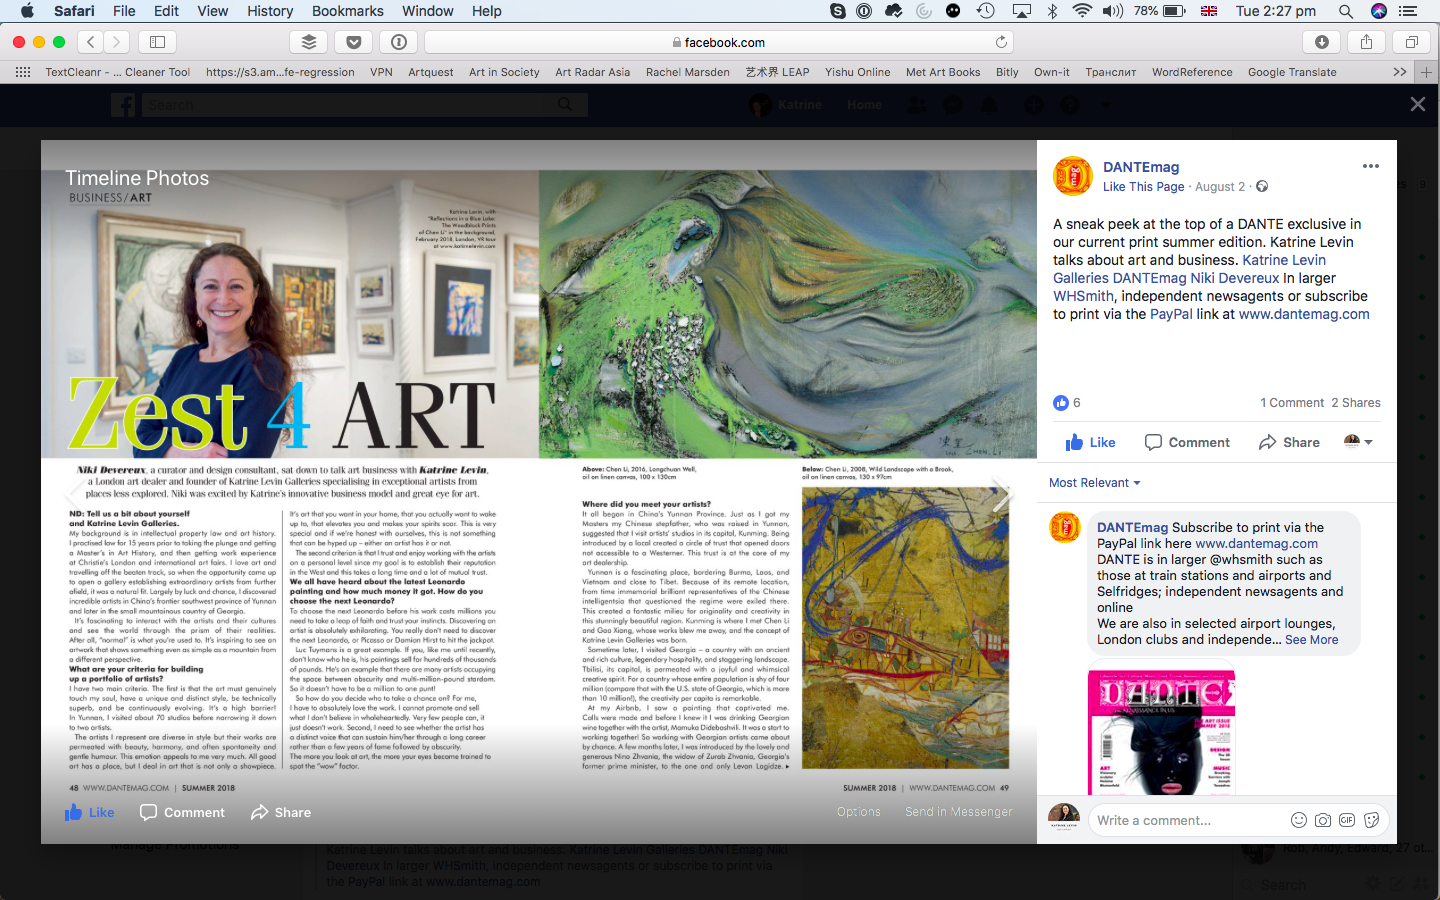 A huge thanks to Dante Magazine for featuring my gallery and thoughts about art business in their summer 2018 print edition! This is just a sneak peak.